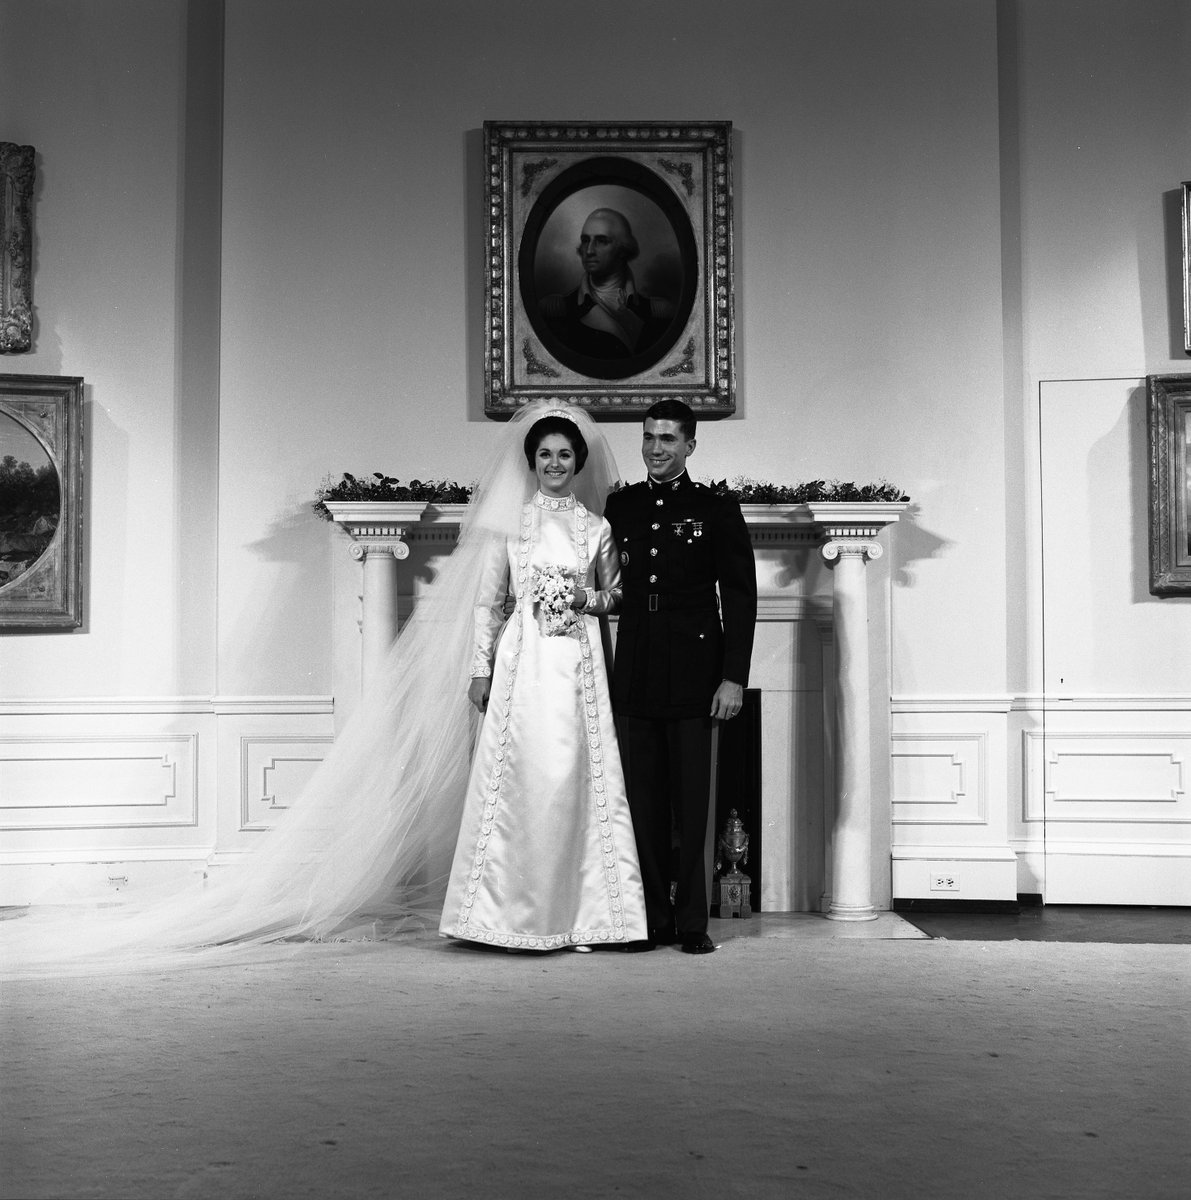 9 1967 Lbj S Daughter Lynda Johnson Married Capt Charles Chuck Robb At The Time It Was First White House Wedding Of A Presidential Son Or